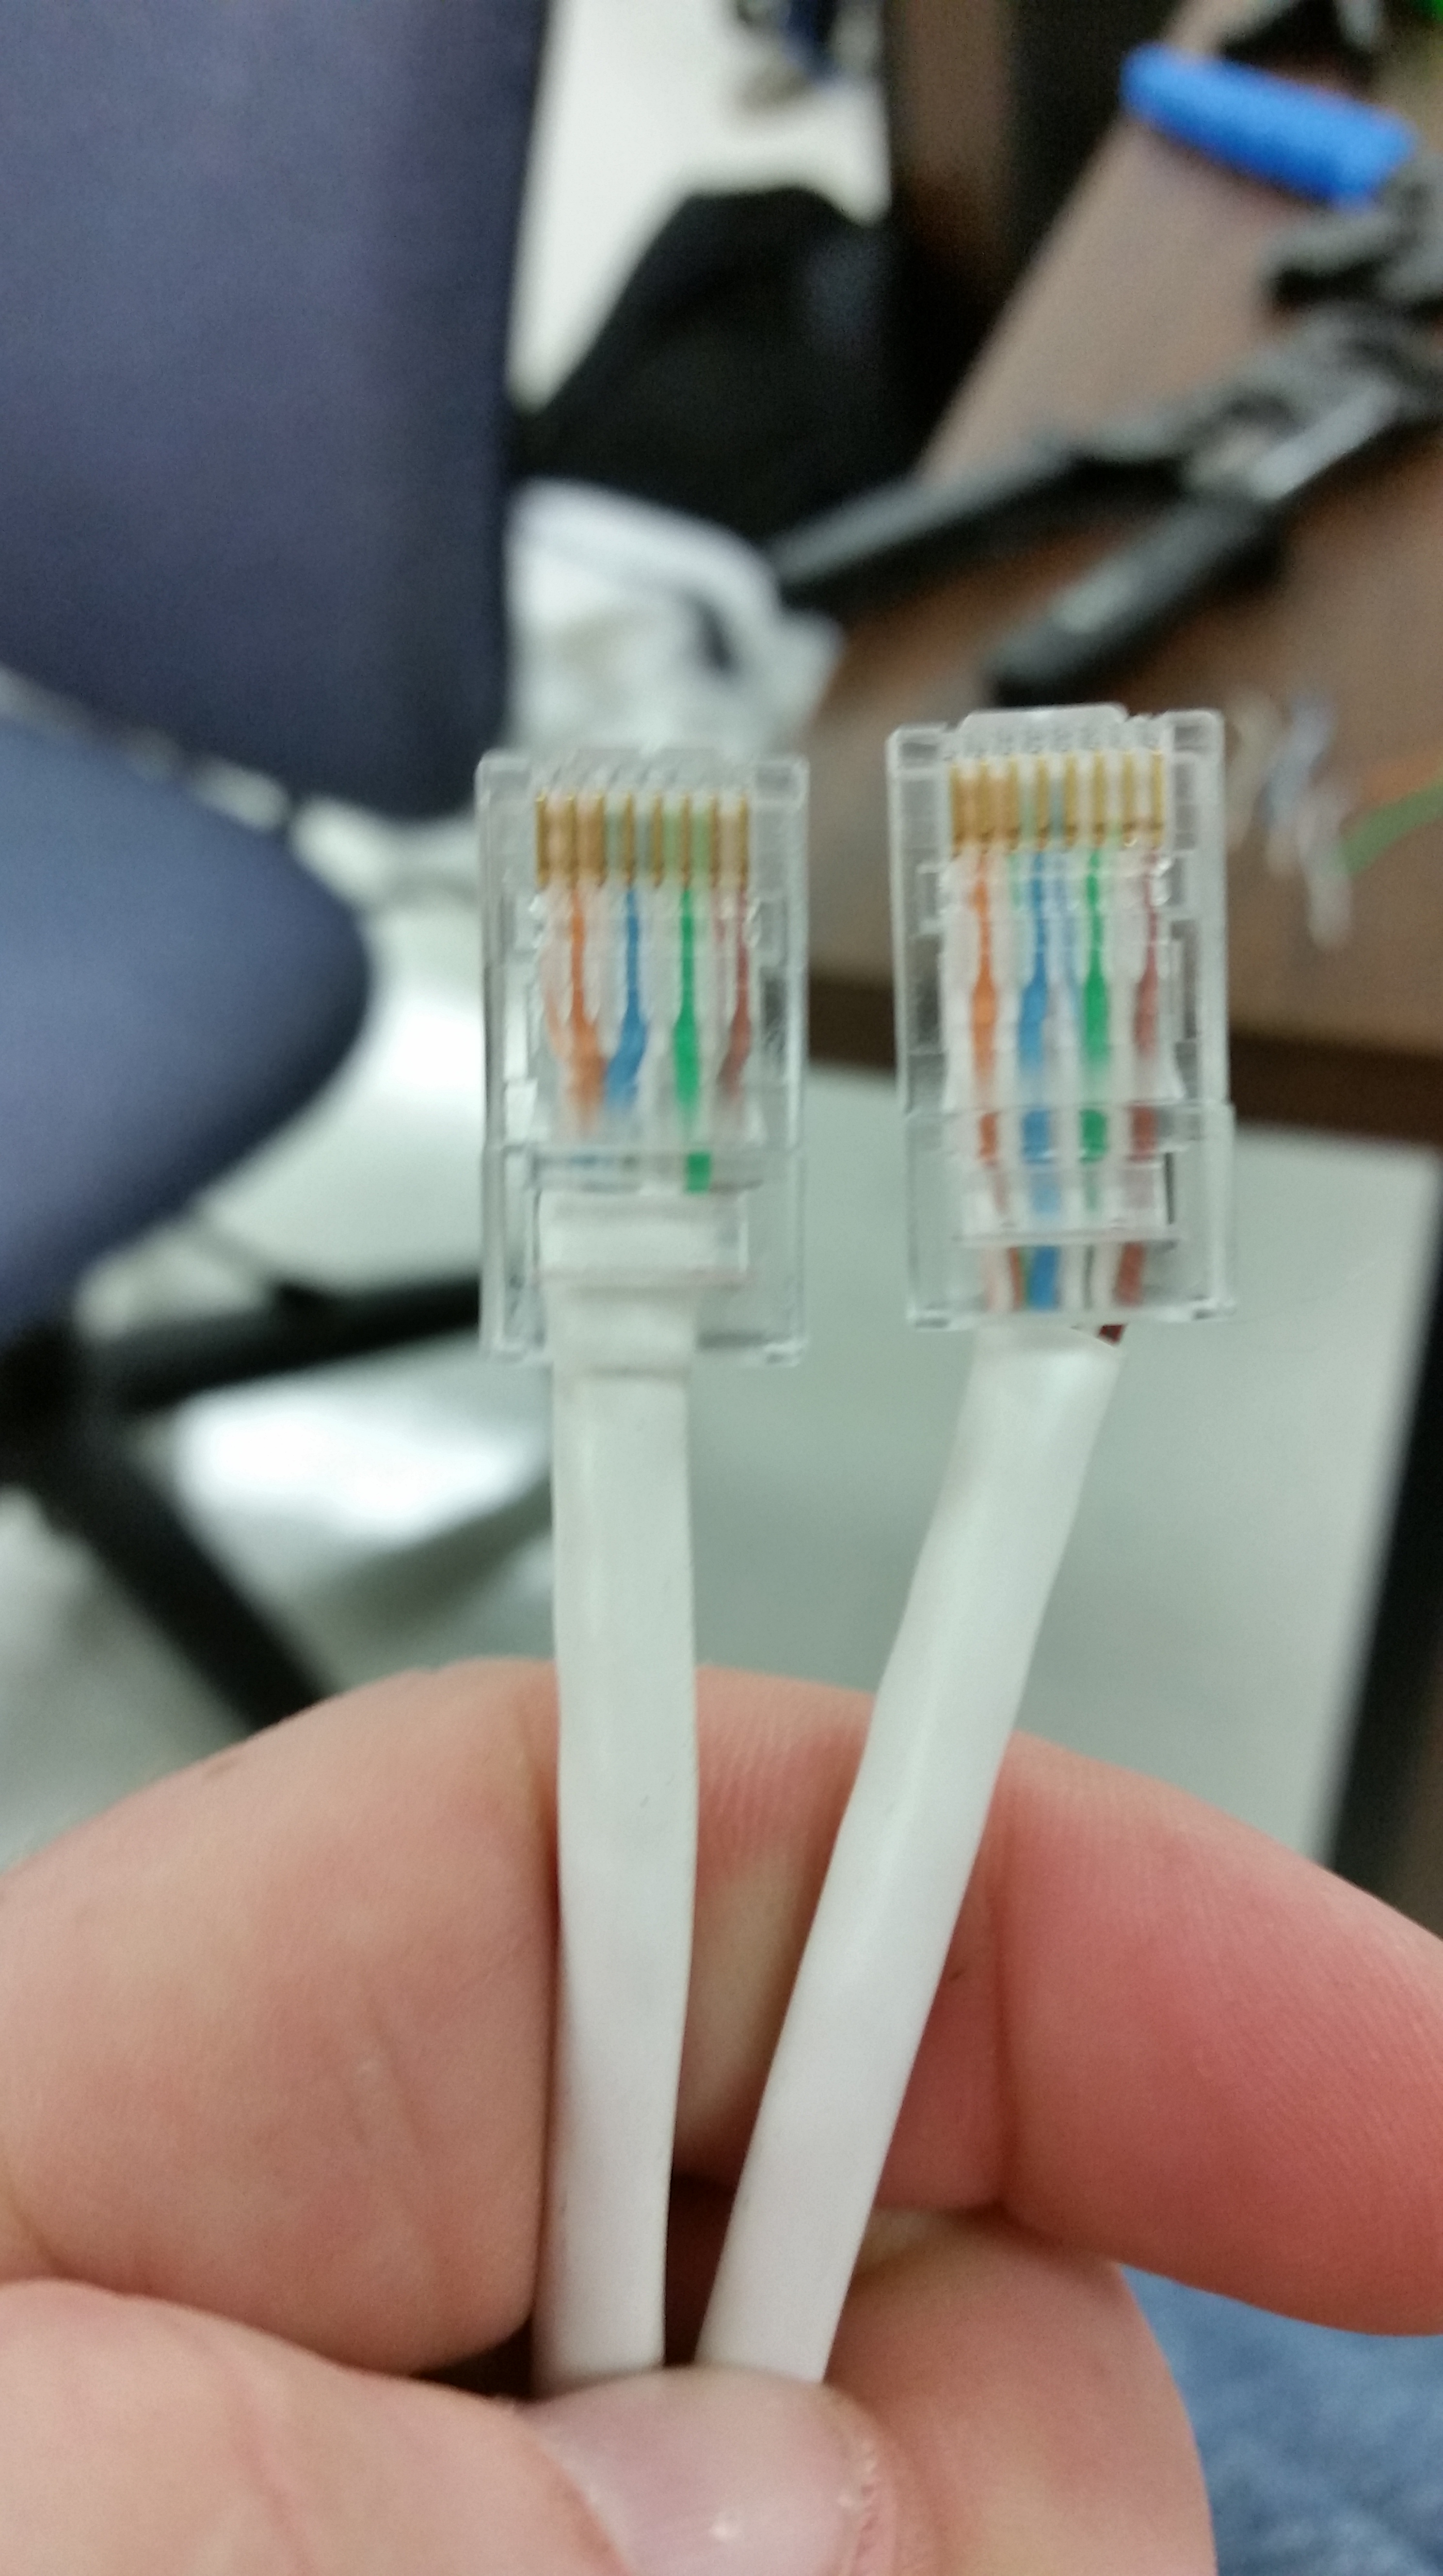 Lab 2 Networking Cables Nassinetworking T568a And T568b Wiring Standards Besides Rj45 Crossover Cable Diagram 20140912 103803